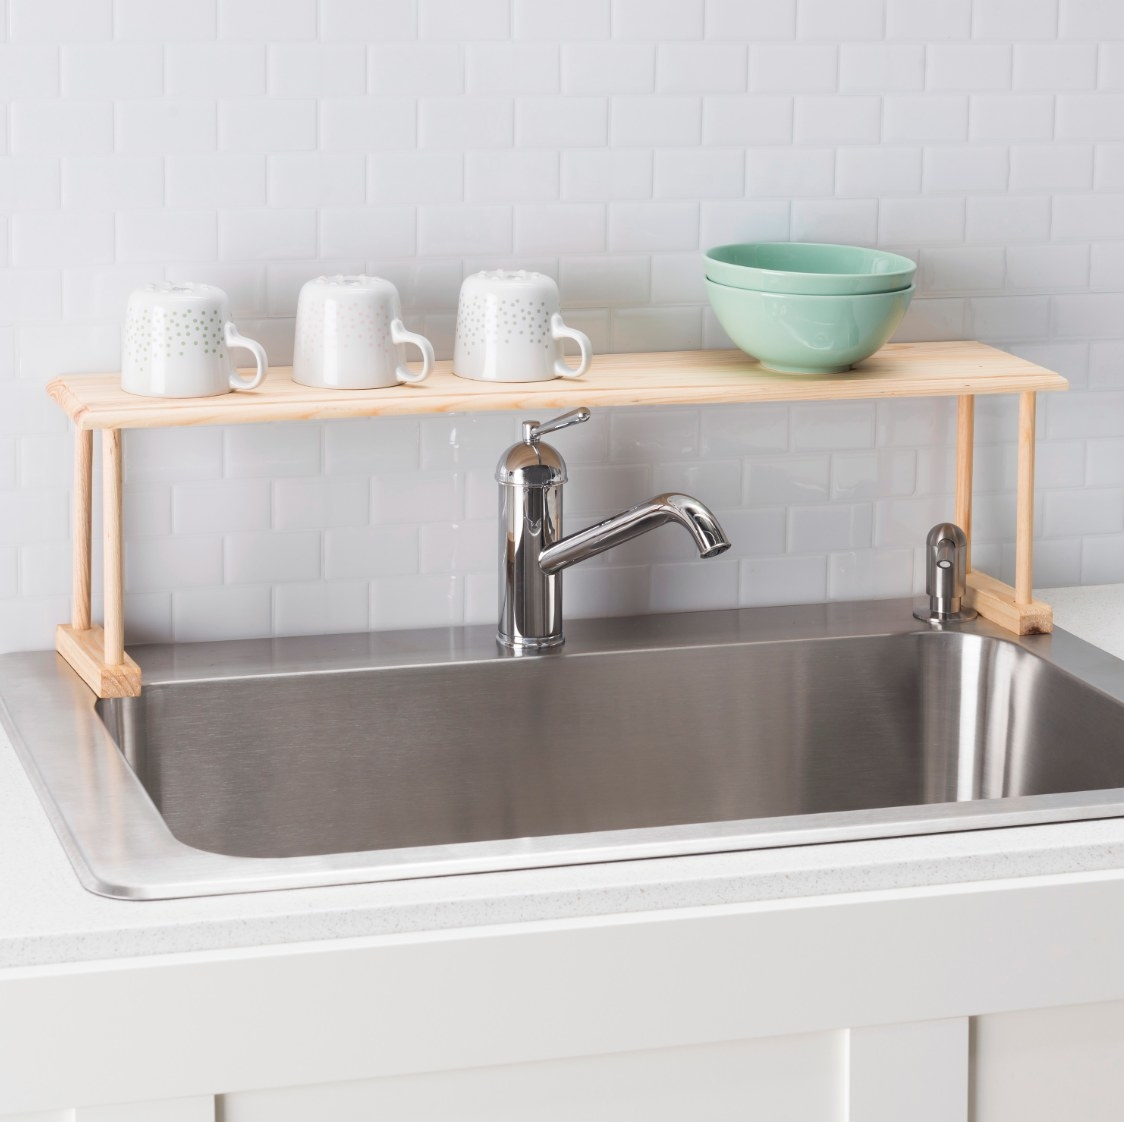 The over-the-sink organizer holding cups and bowls